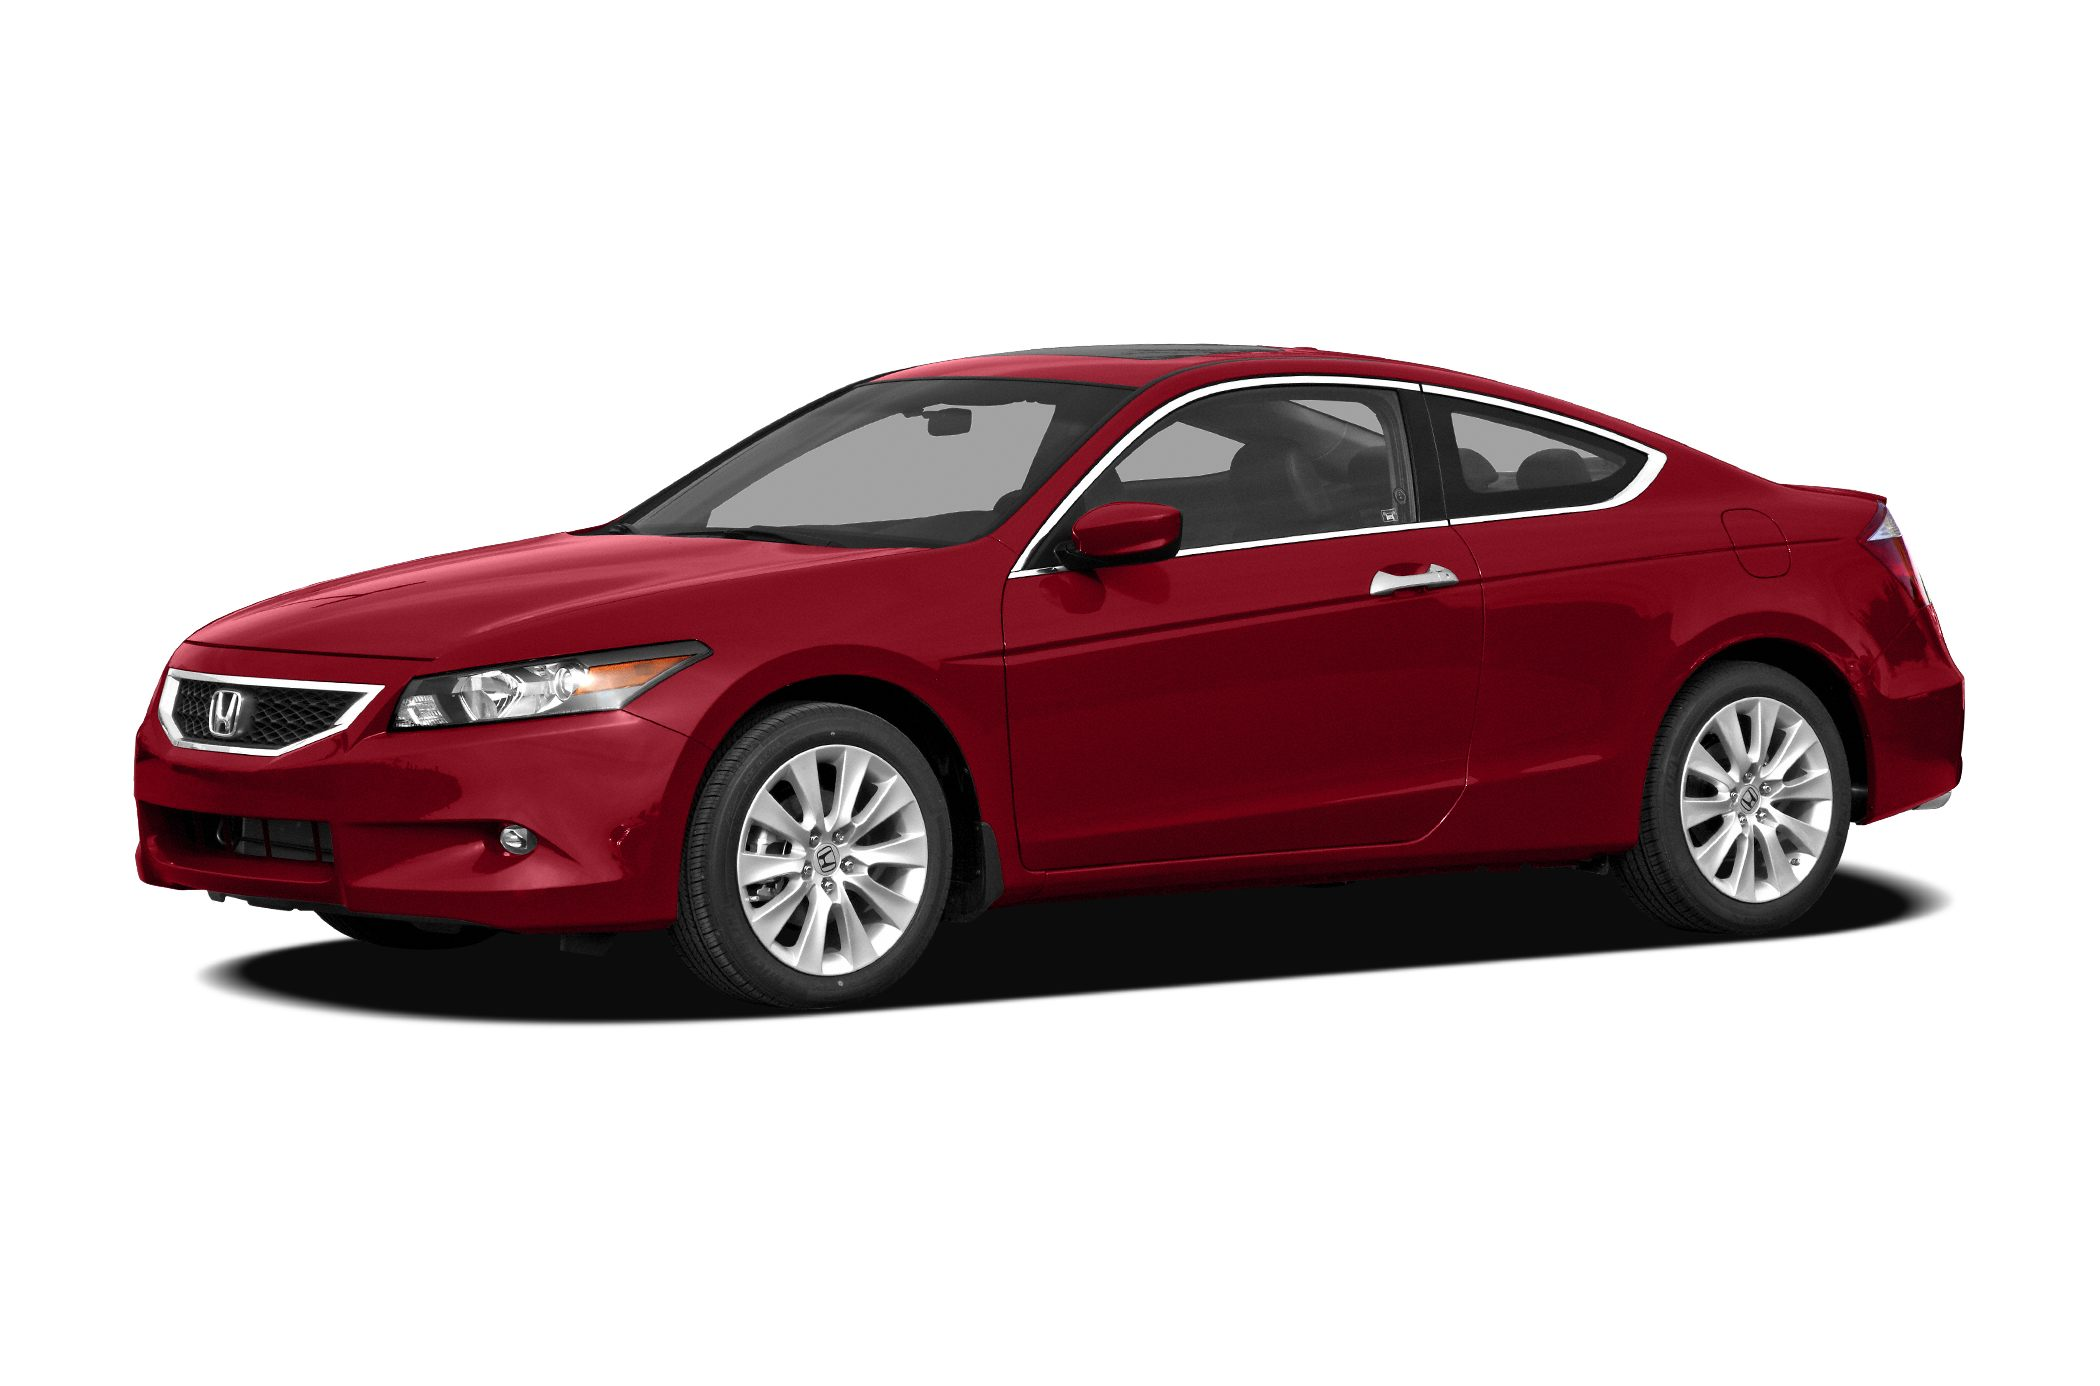 2009 Honda Accord LX-S Coupe for sale in Buford for $11,499 with 94,555 miles